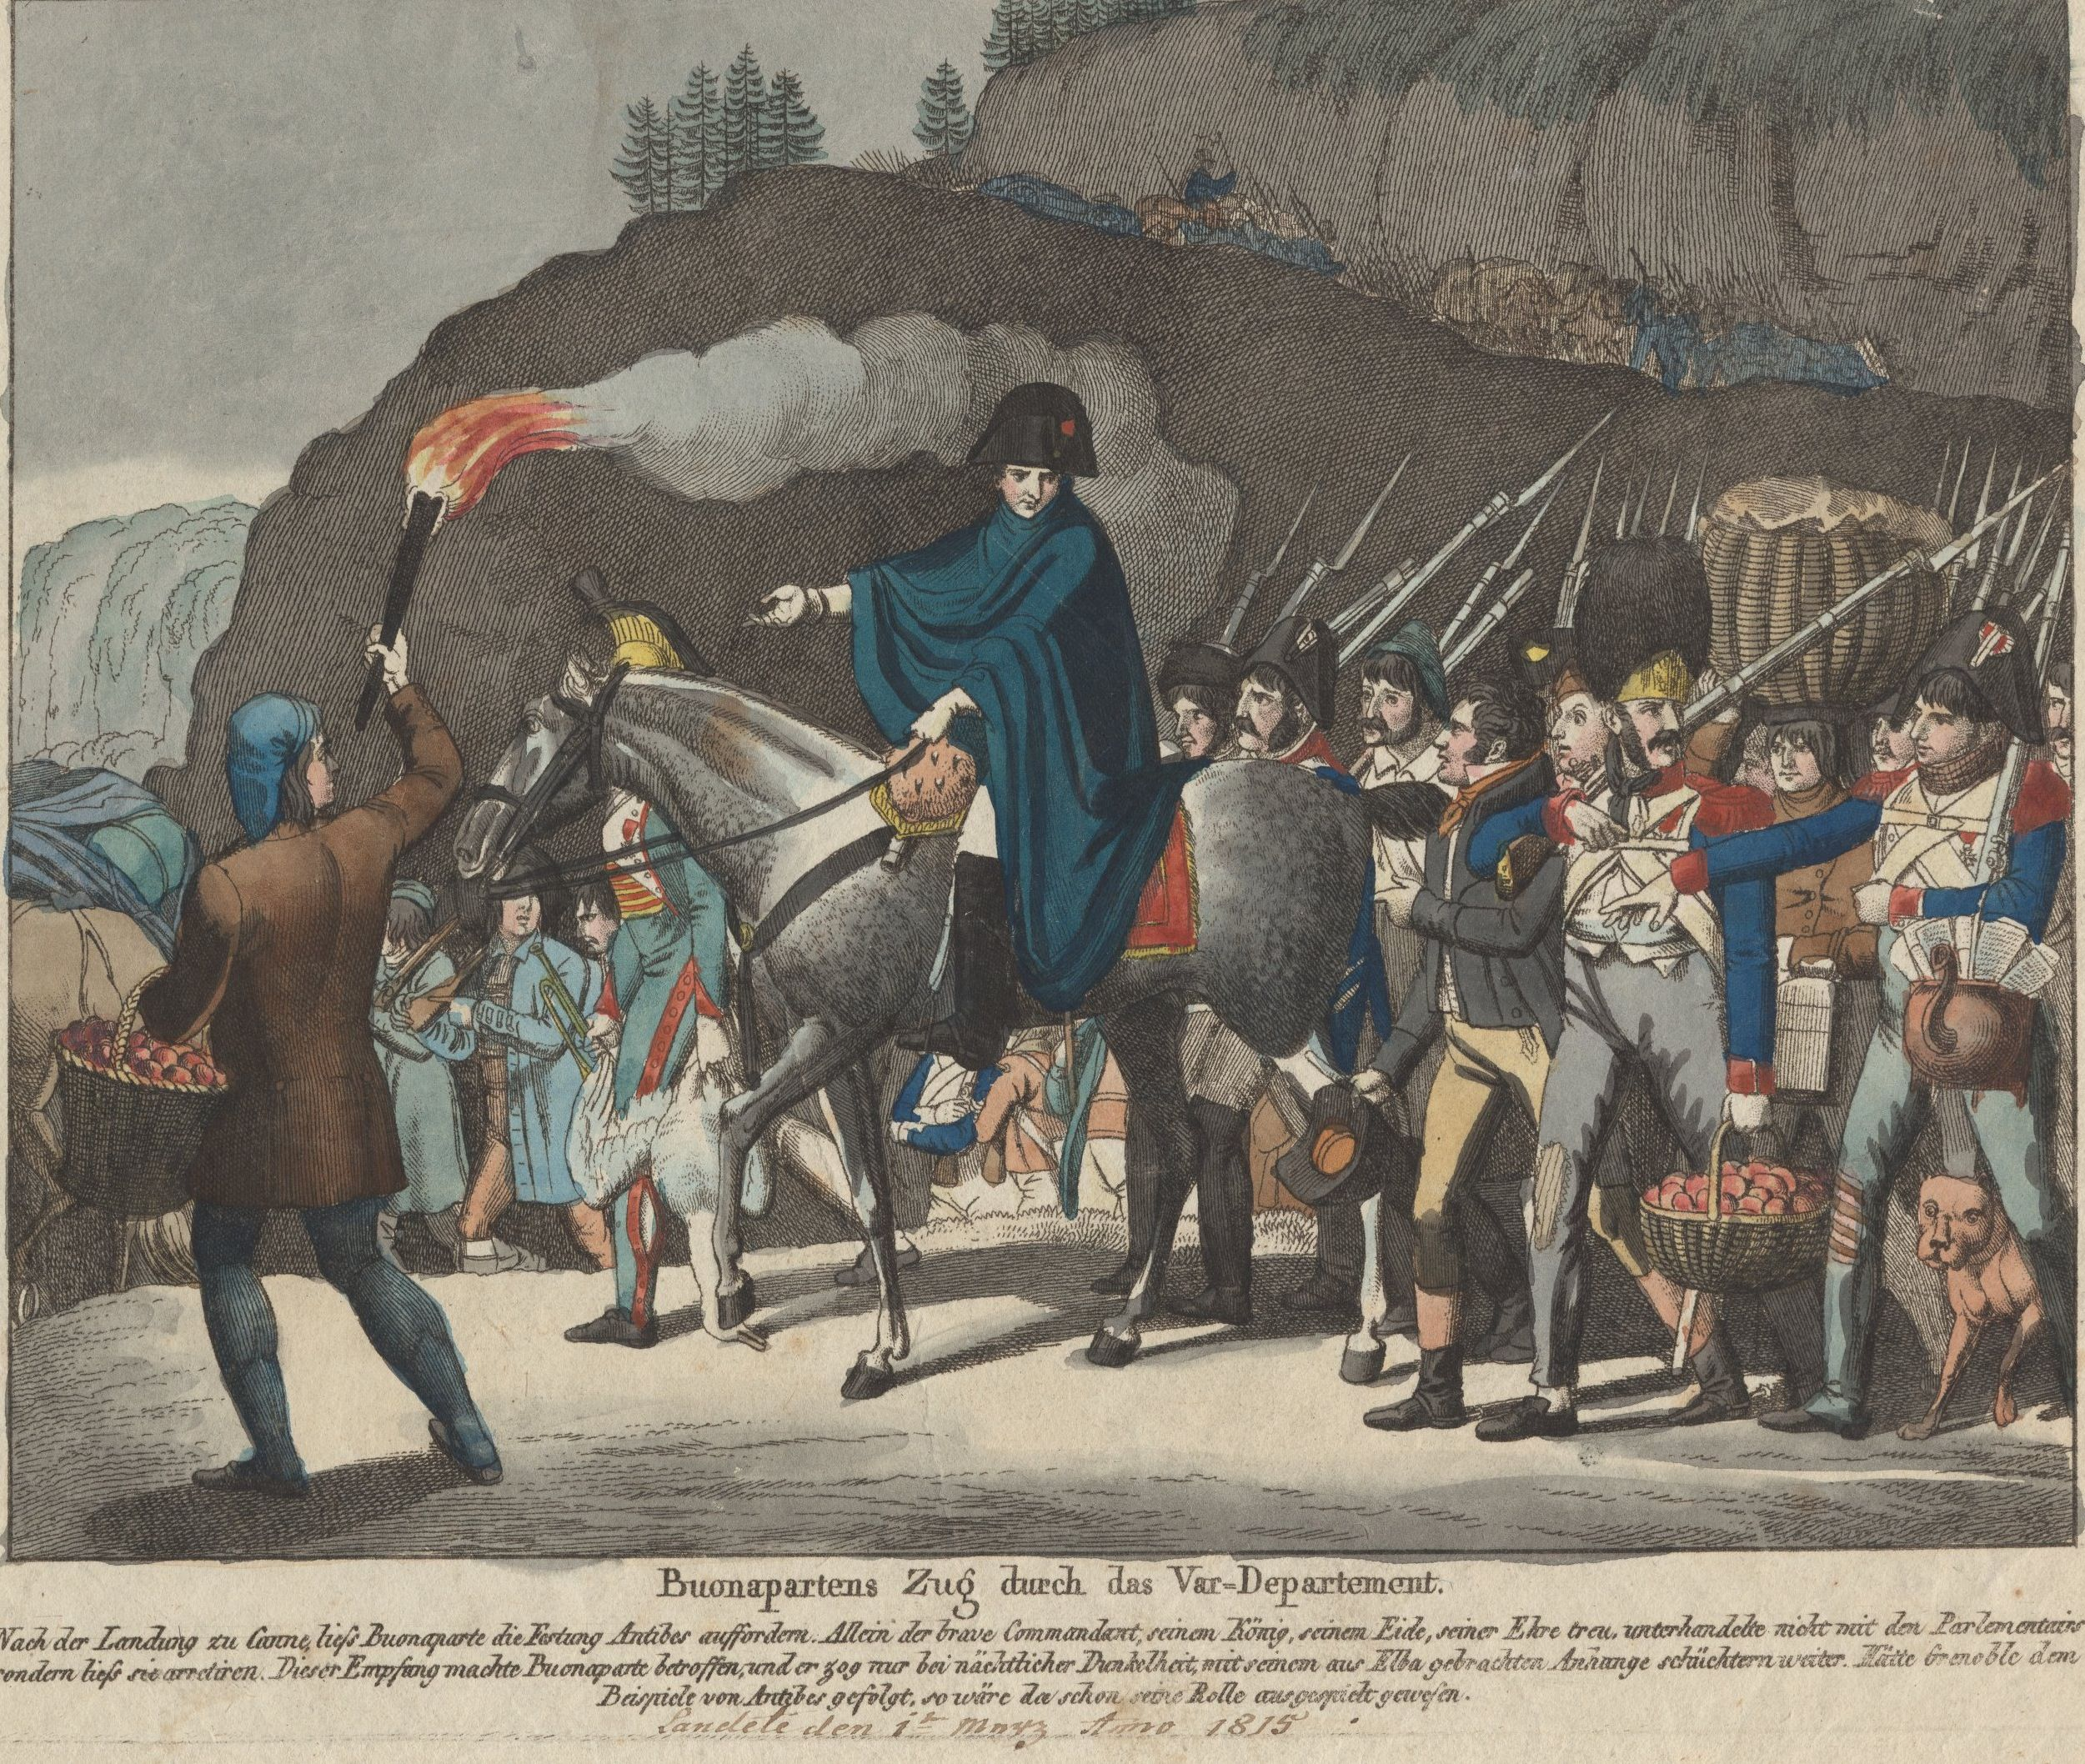 The total numbers of the French Army Soldiers and noncommissioned officers.    At its height in 1812 consisted of 554.500 men:      300.000 Frenchmen and Dutchmen,             95.000 Poles,    35.000  Austrians,    30.000  Italians,    24.000  Bavarians,    20.000  Saxons,    20.000  Prussians,   17.000  Westphalians,    15.000  Swiss    6.000  Portuguese    3.500  Croats